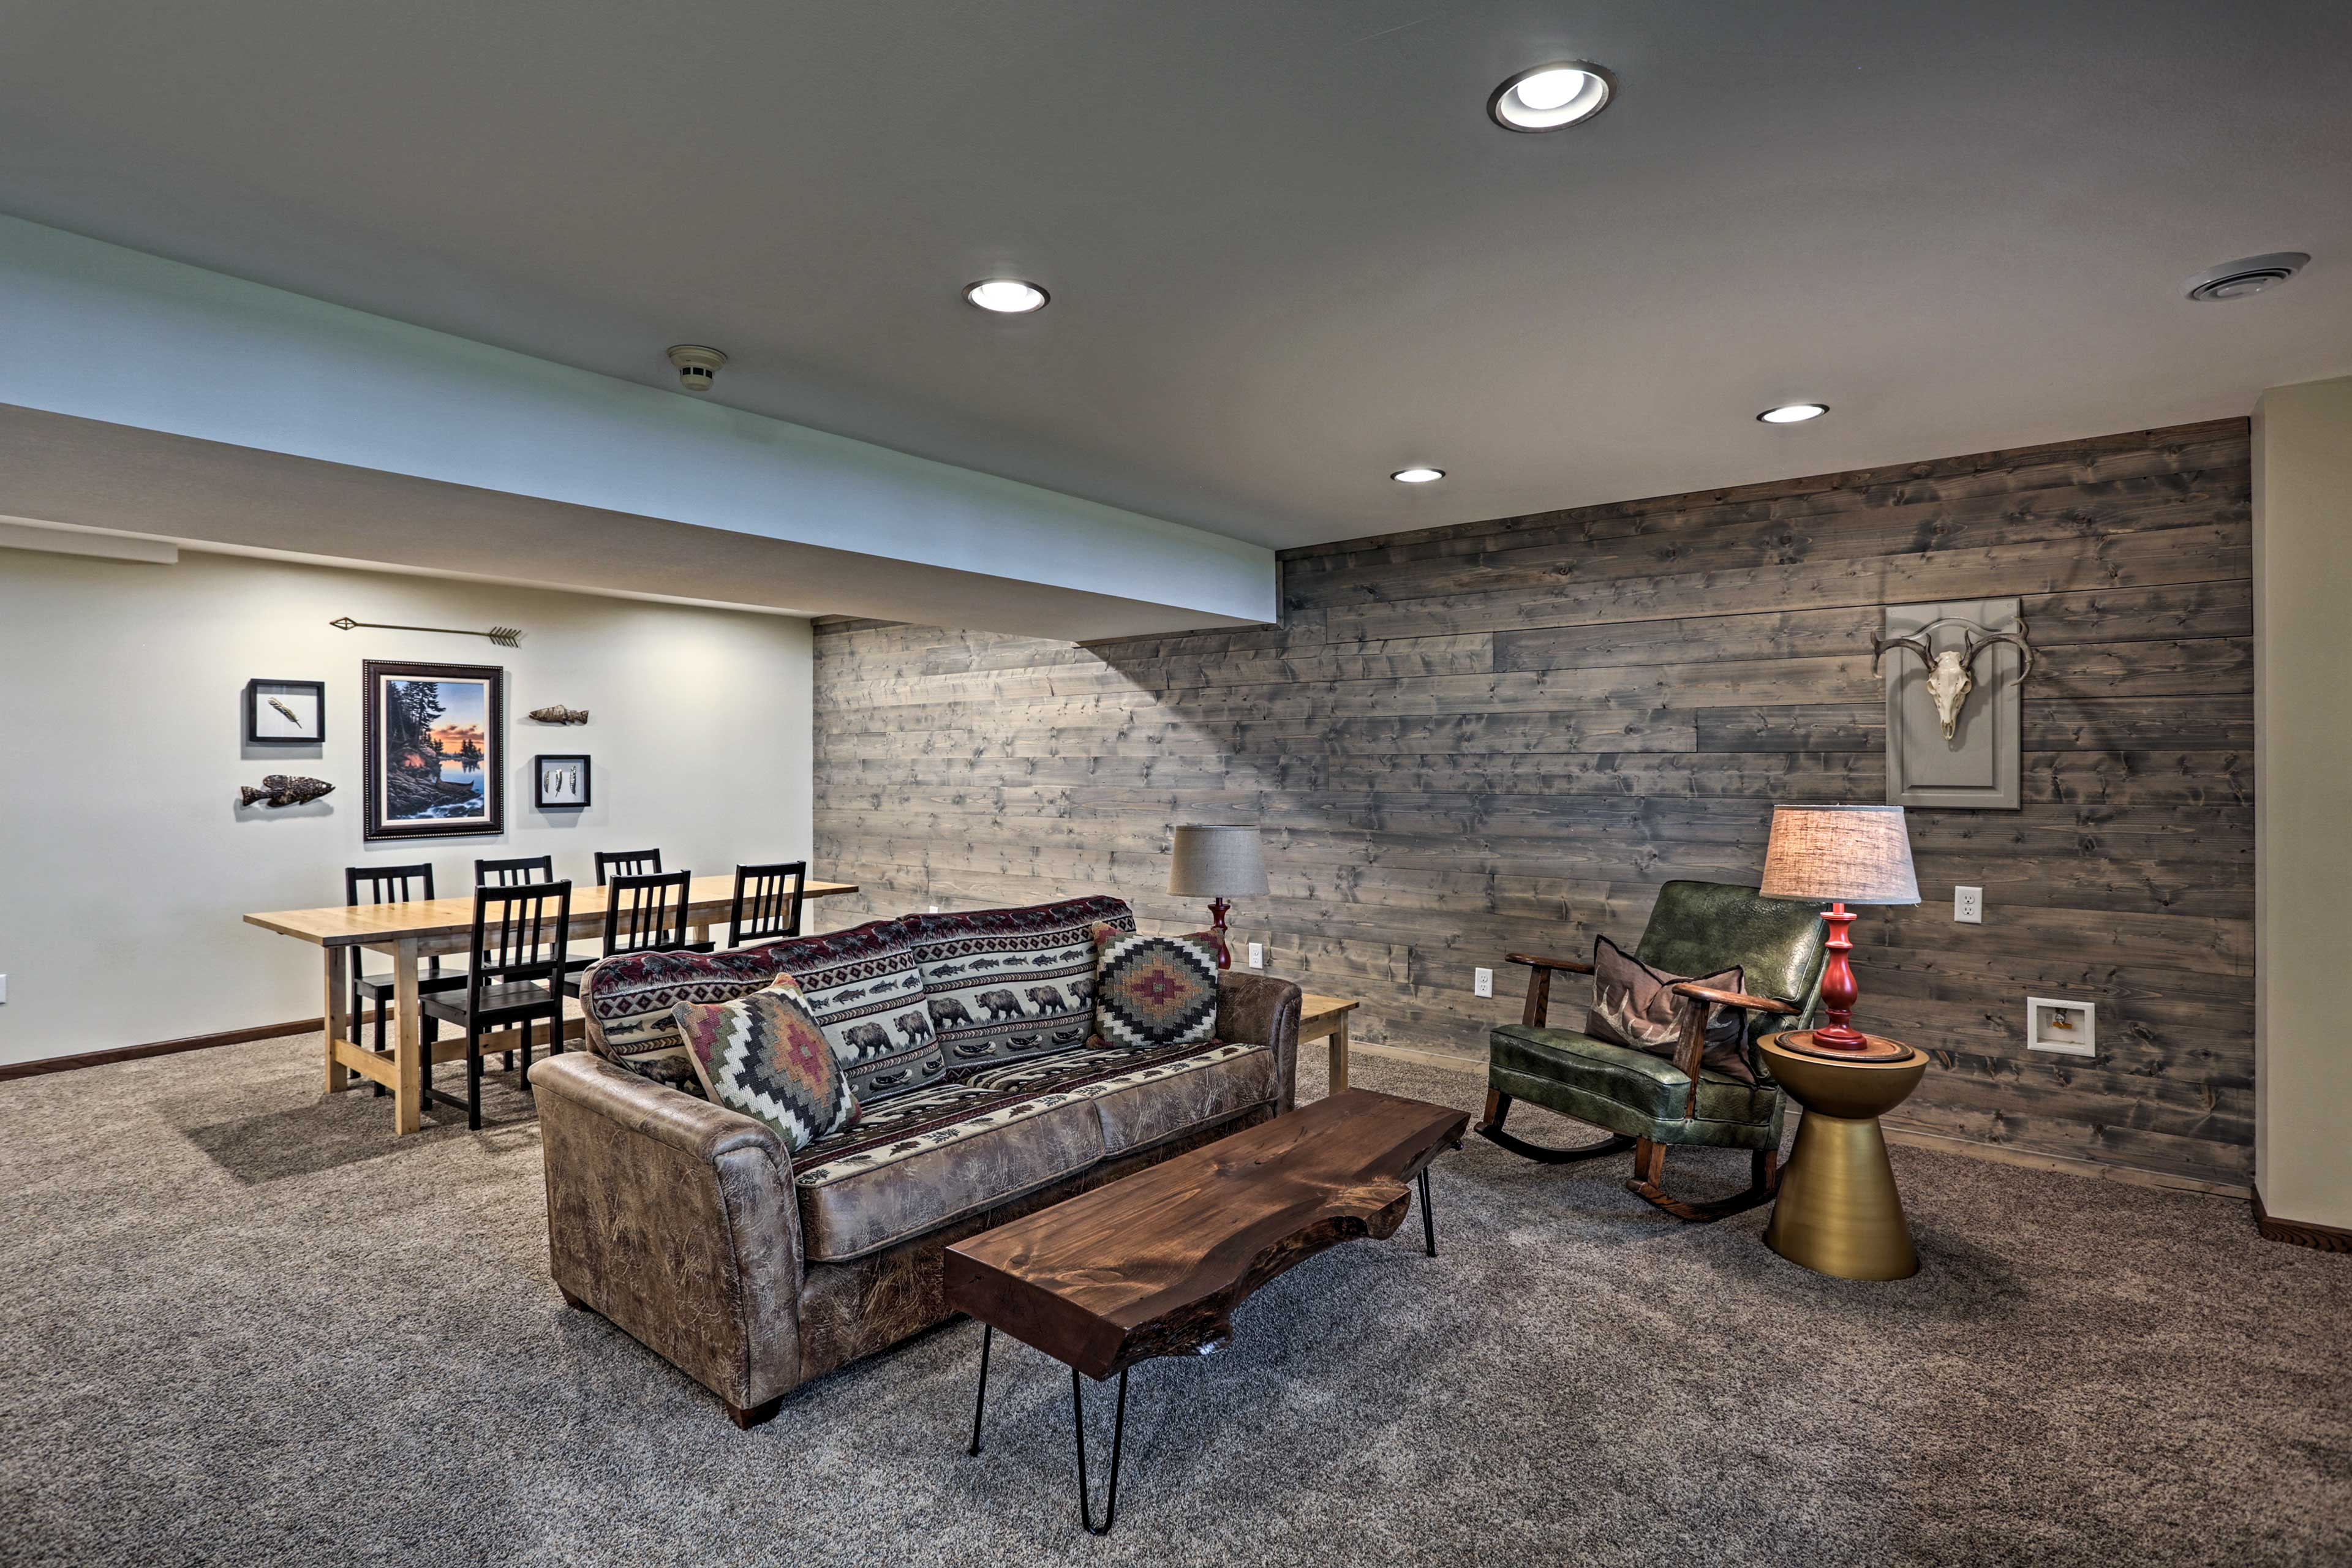 Prepare your favorite drink at the wet bar and settle into the leather couch.